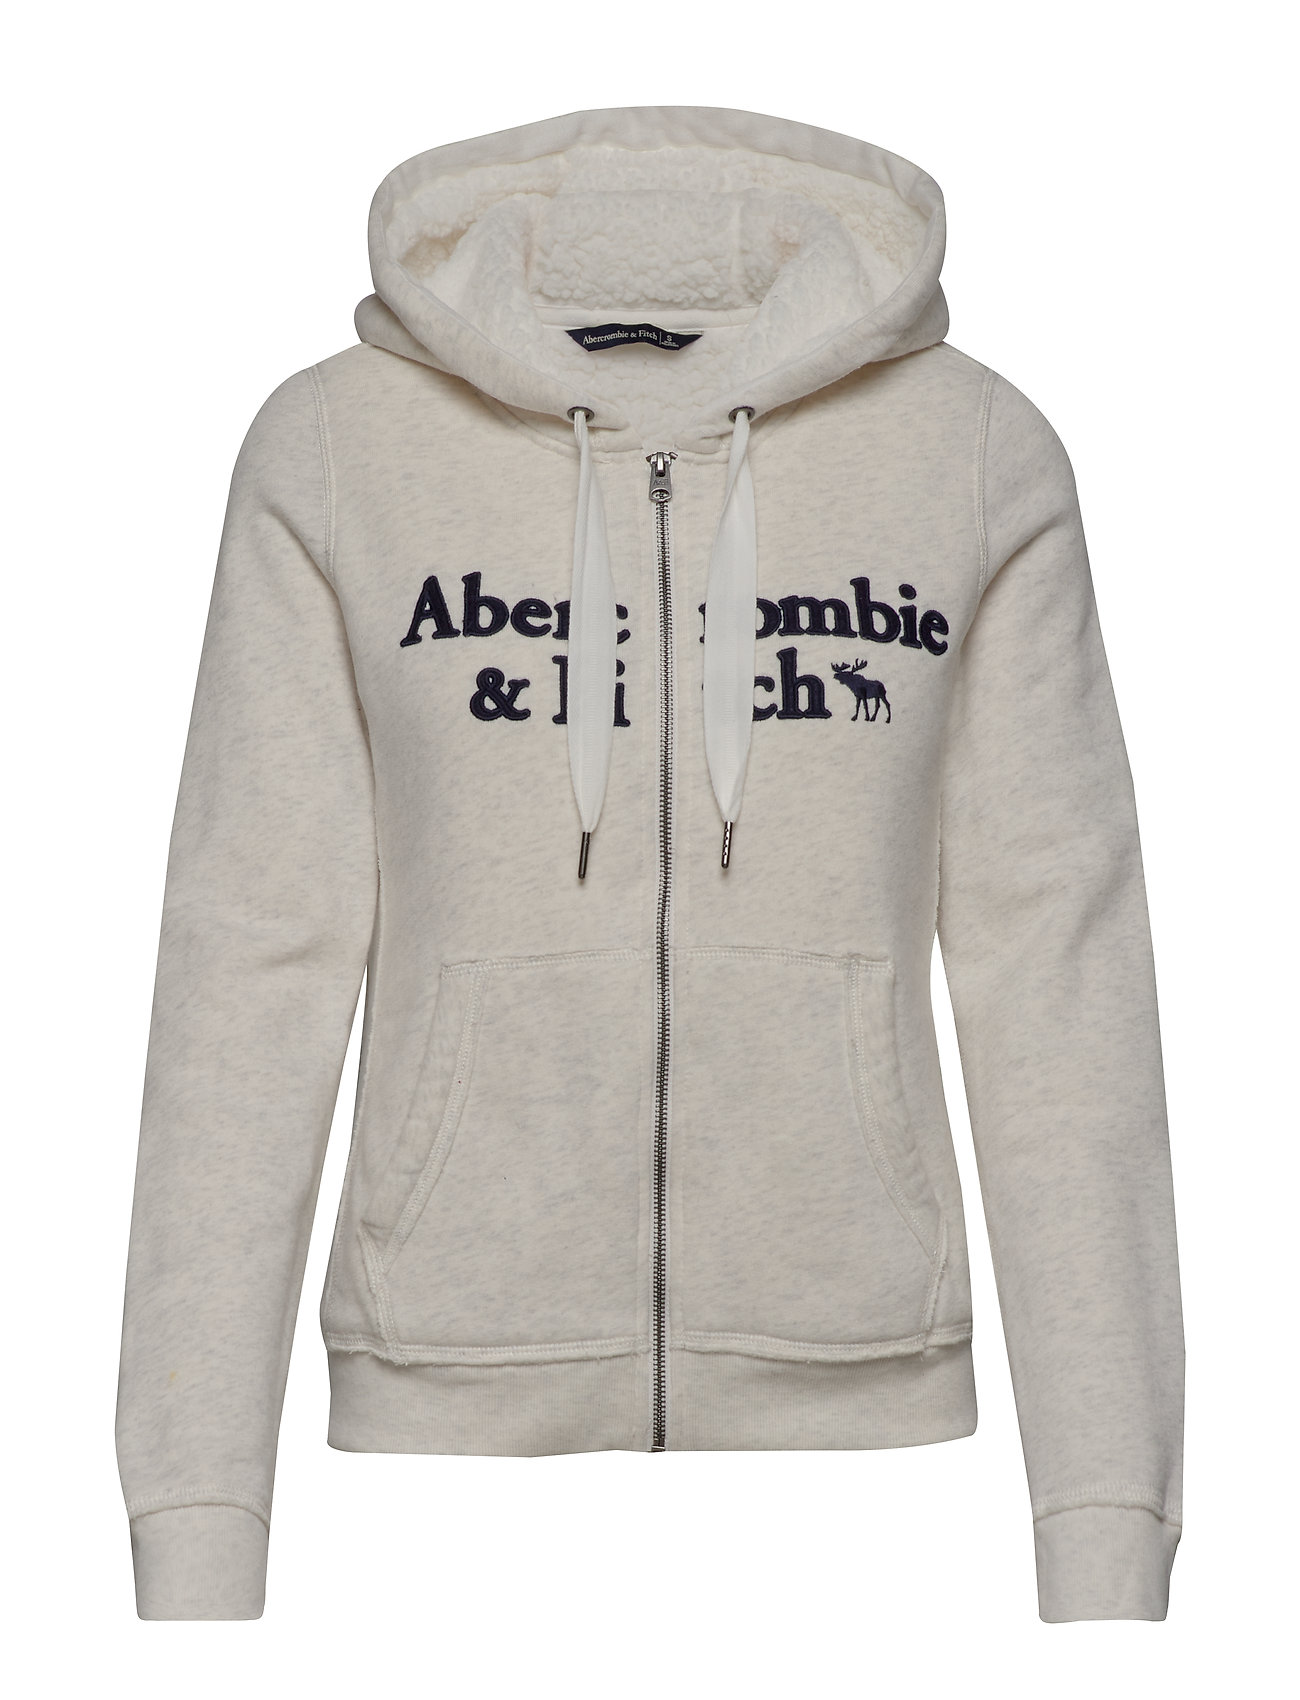 Abercrombie & Fitch Sherpa Linded Logo Full-Zip - LIGHT GREY SD/TEXTURE